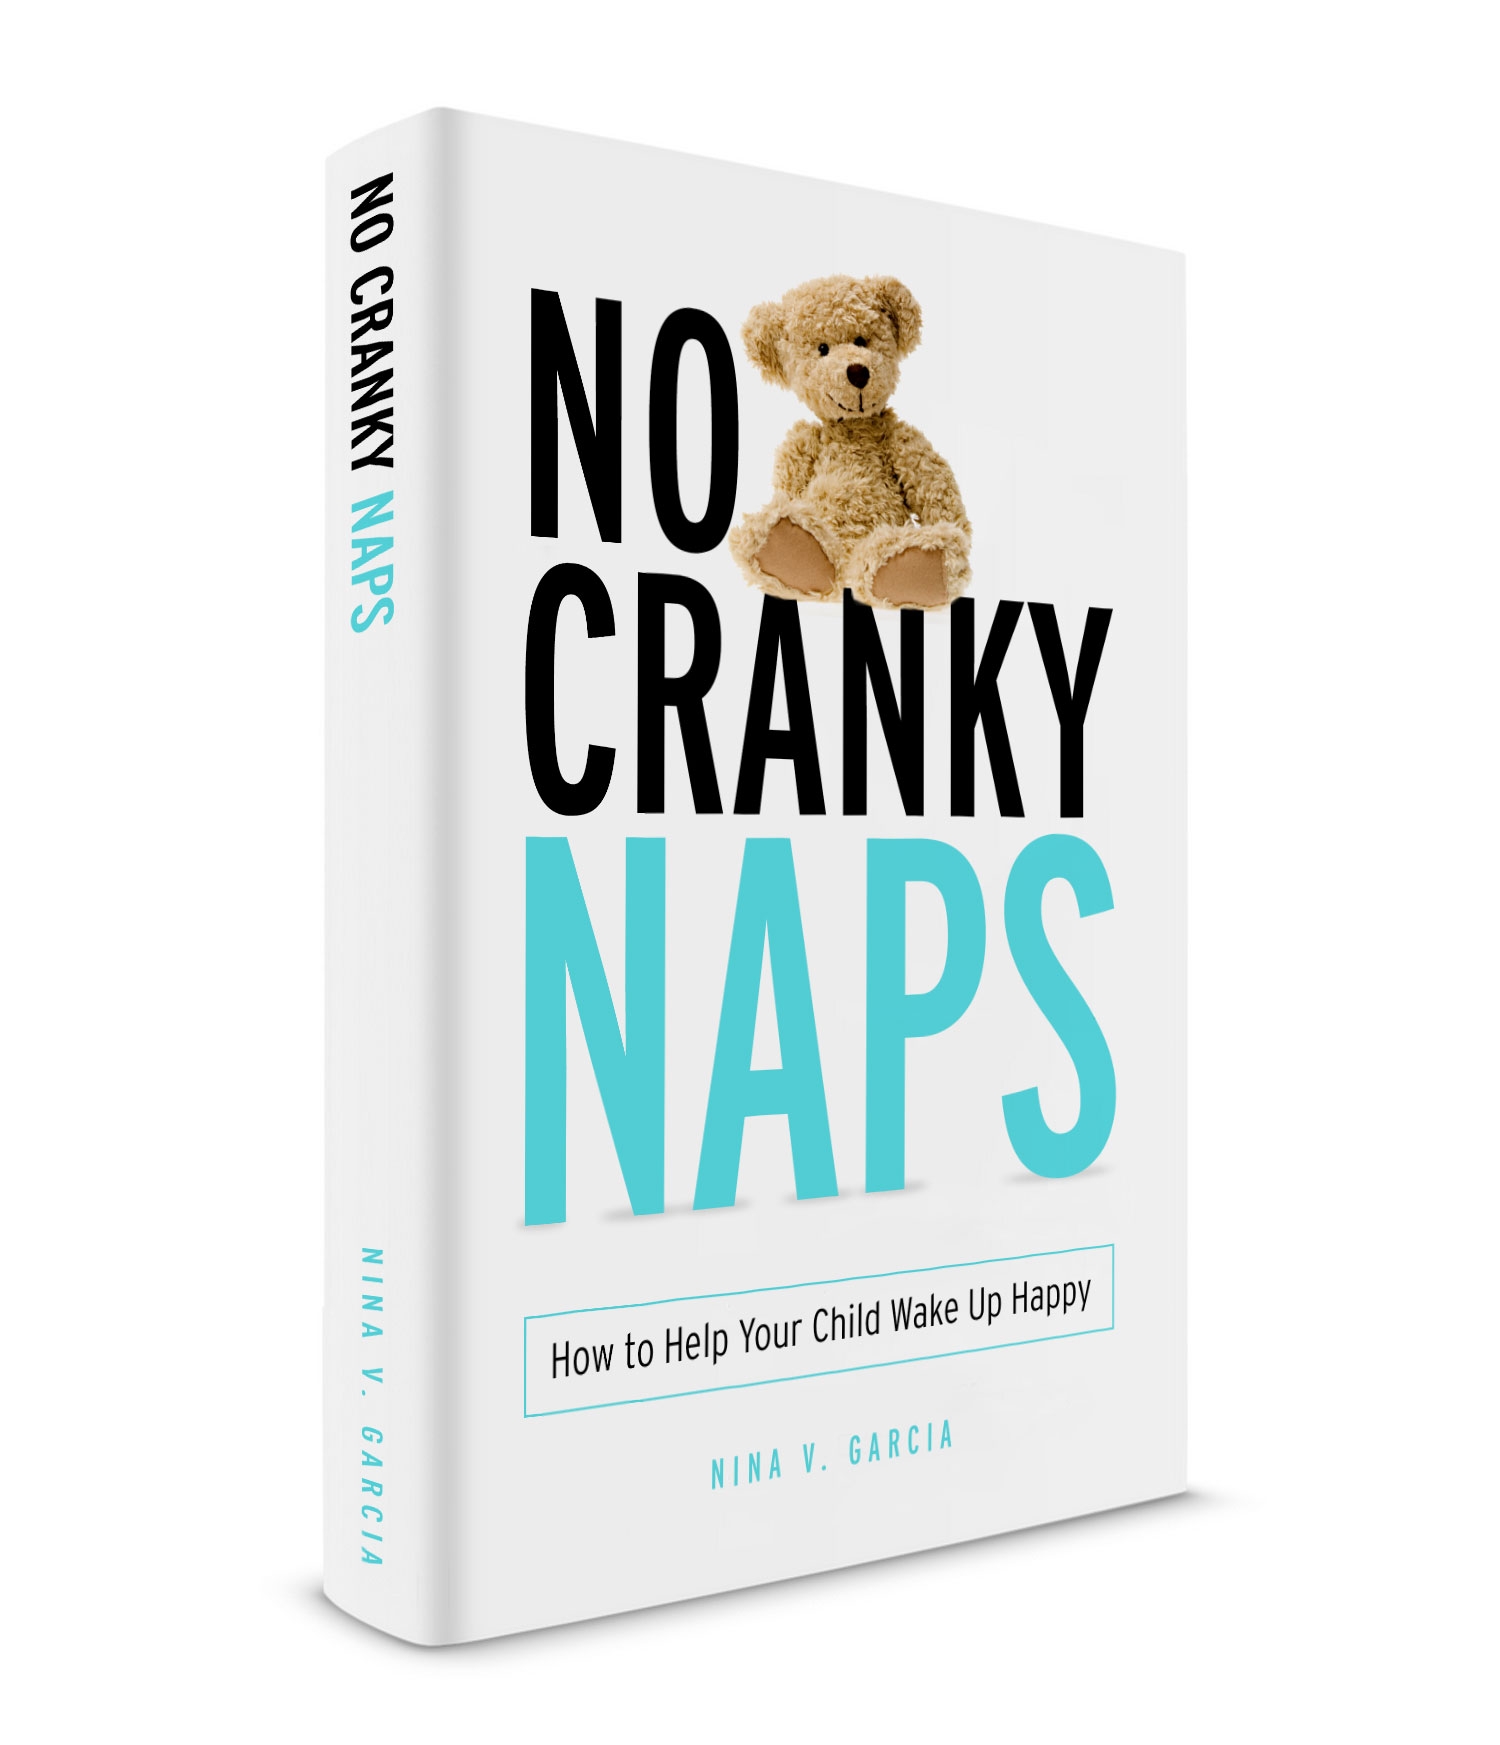 No Cranky Naps: How to Help Your Child Wake Up Happy